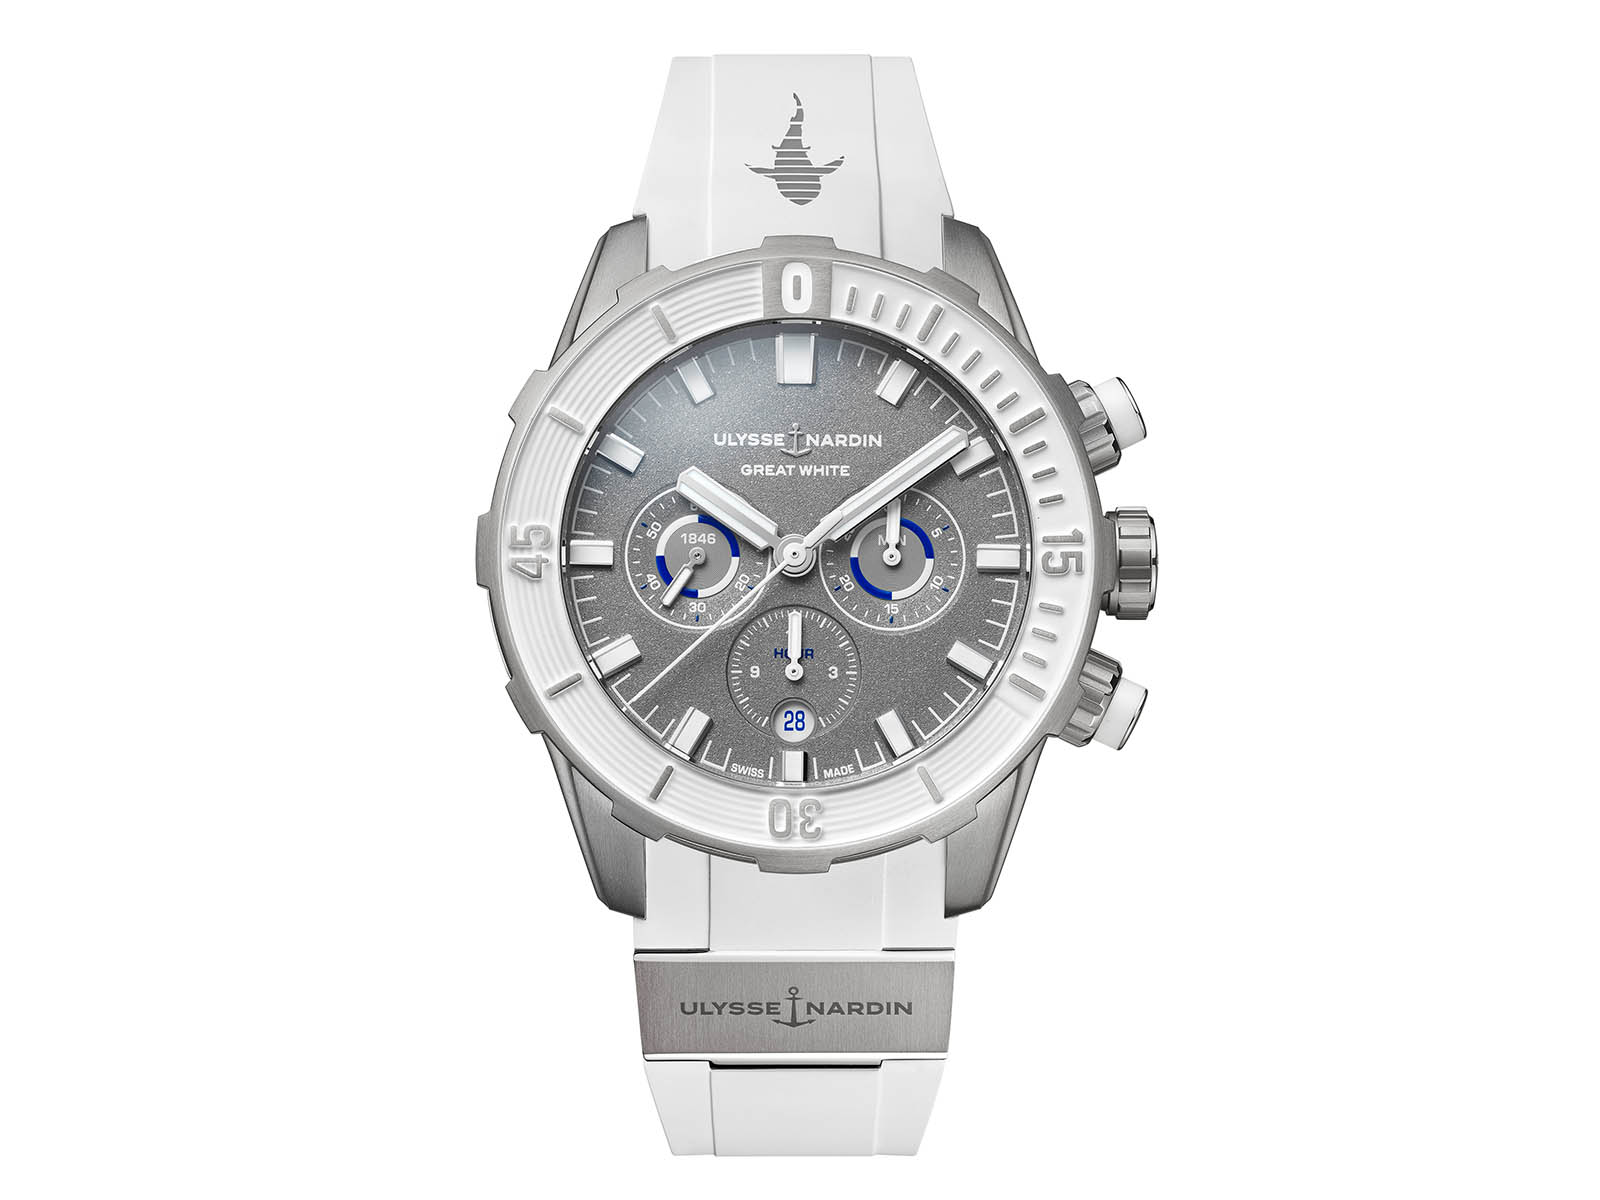 ulysse-nardin-diver-chronograph-44mm-limited-edition-great-white-7.jpg